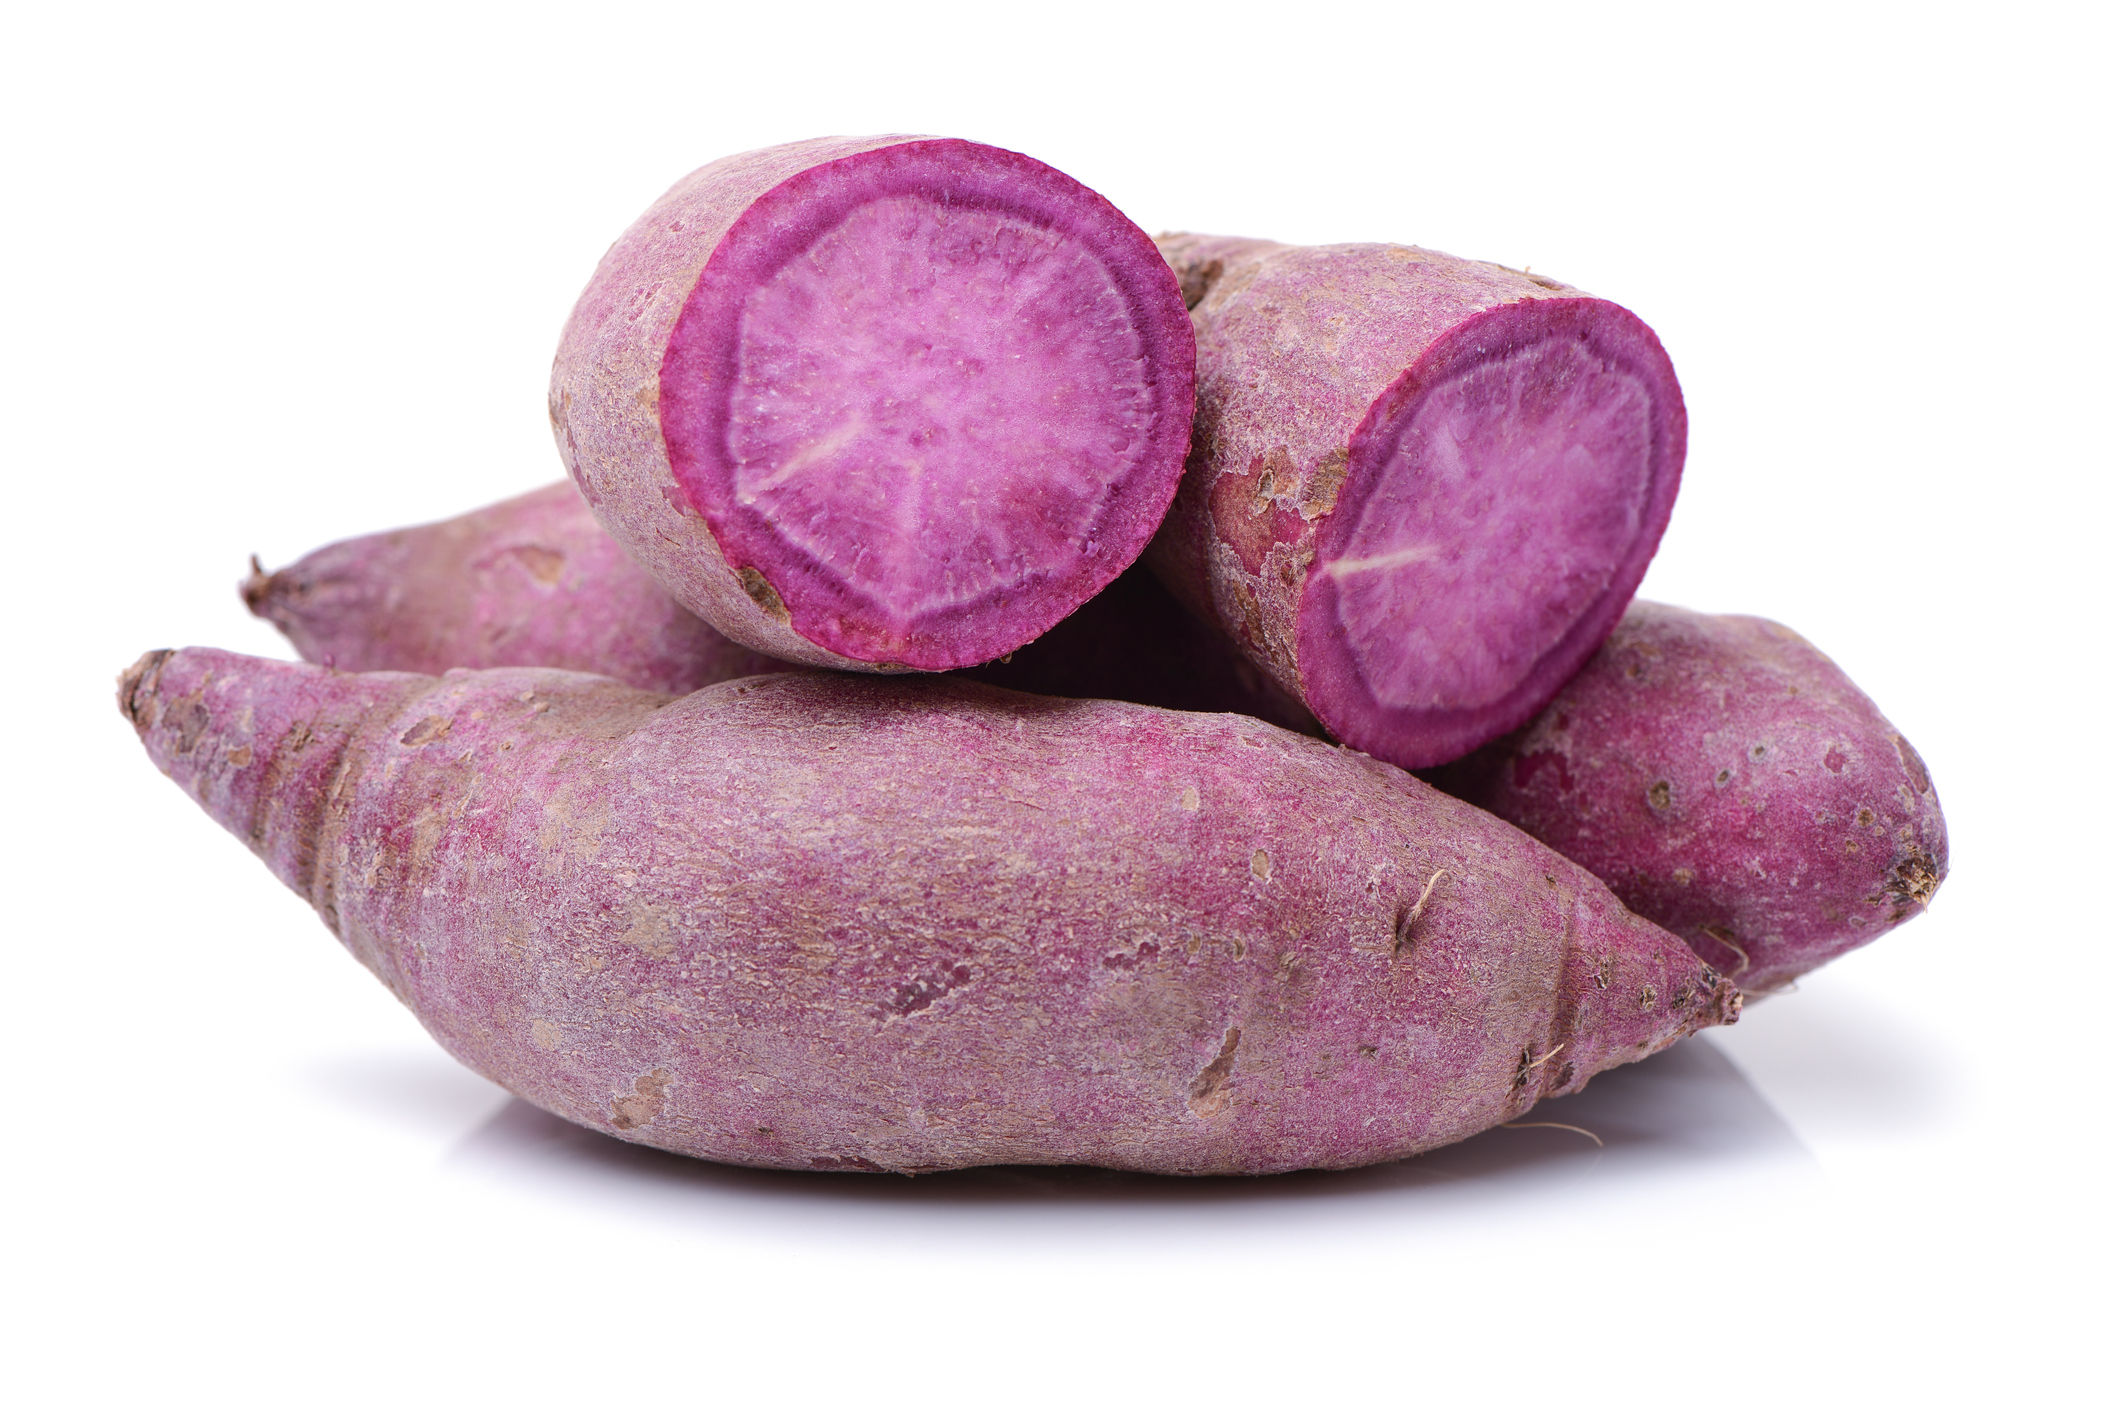 What You Should Know About the Purple Sweet Potato